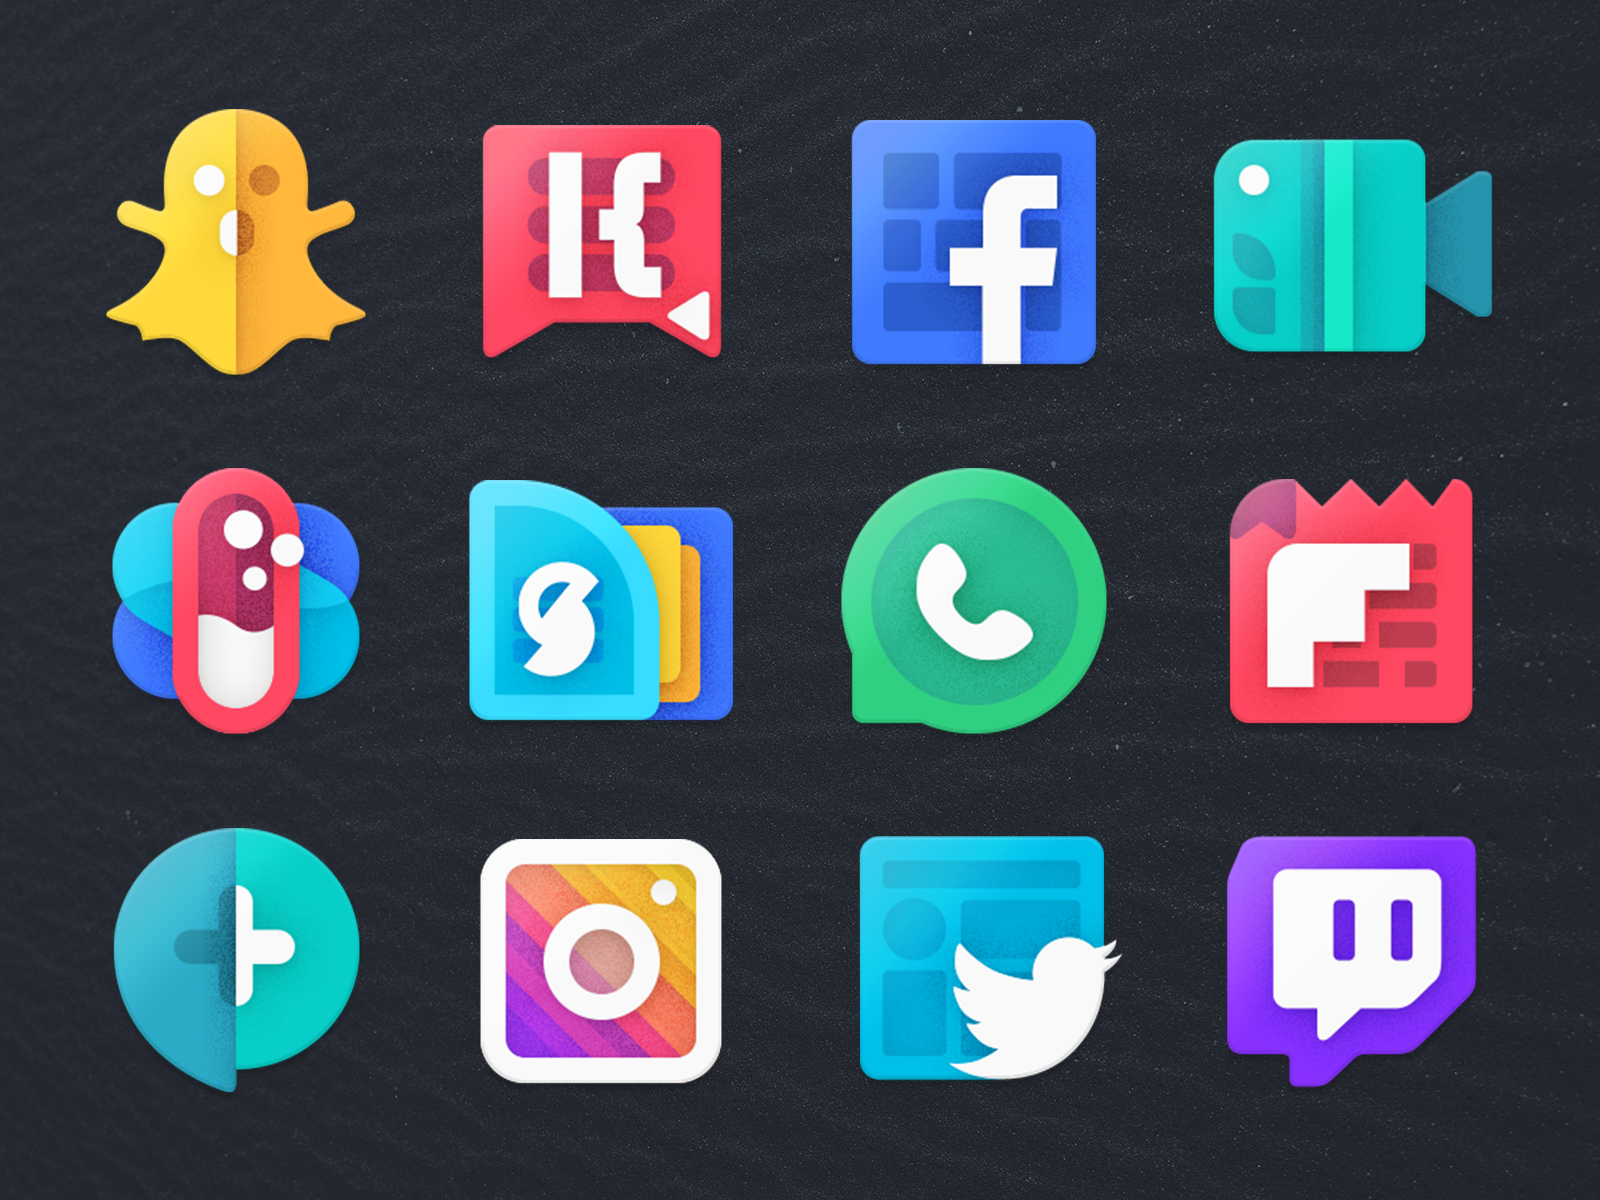 Icon Design Preview icons design icons pack icons set snapchat twitter facebook icon moxy icons photoshop illustration icon design design icons